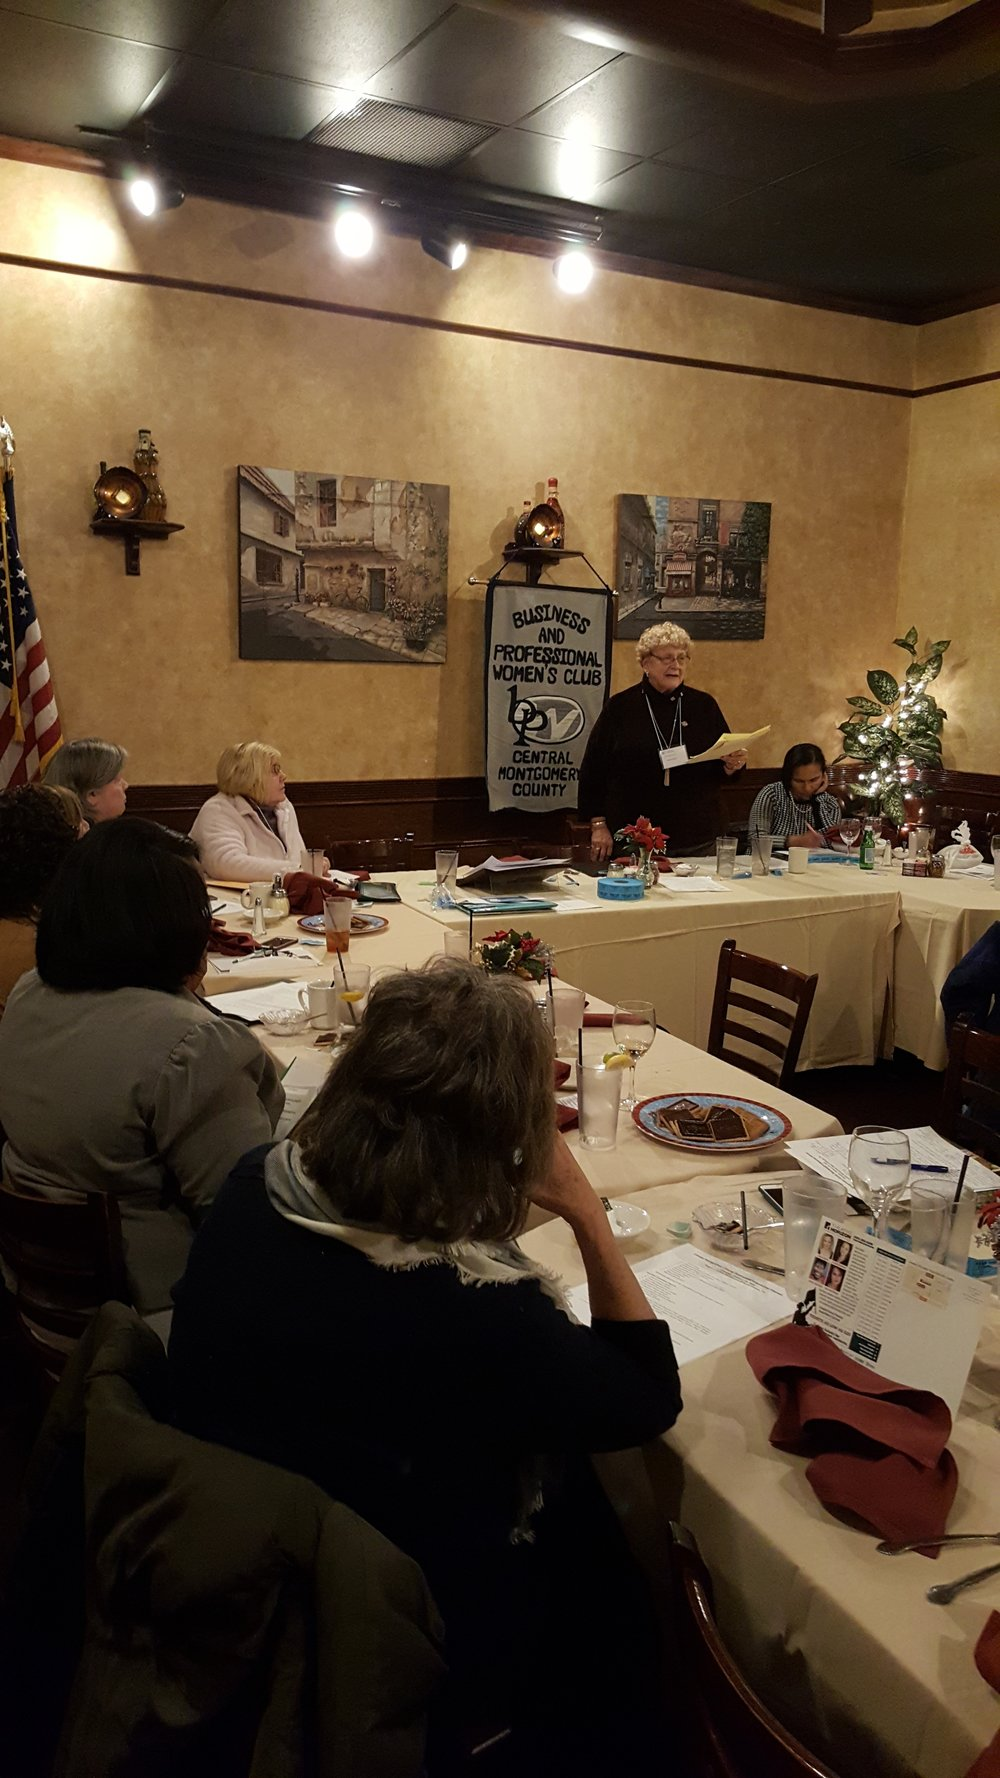 Longtime CMC member, Norma Zarfoss gave a stellar talk on BPW PA Foundation during our January meeting. Norma is usually joined by Past State President, Nancy Werner, who will be back to is real soon! Foundation supports scholarships and Edith Oler emergency fund. Visit  bpwpa.org  to learn more.